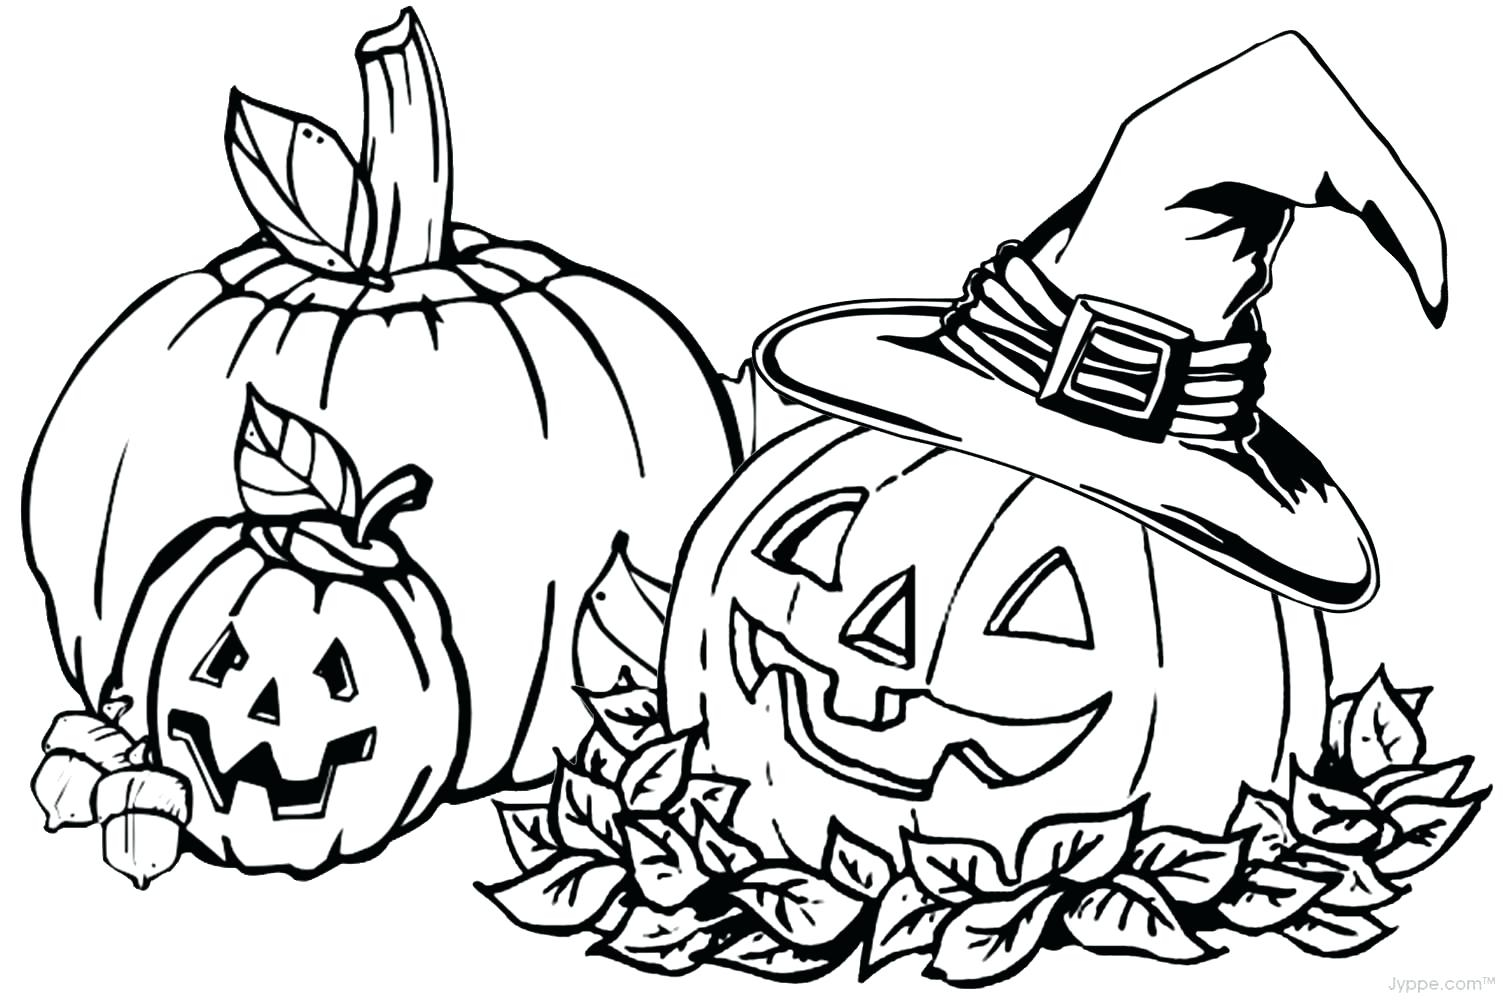 1503x1000 Pumpkin Coloring Pages Printable Gallery Free Coloring Pages